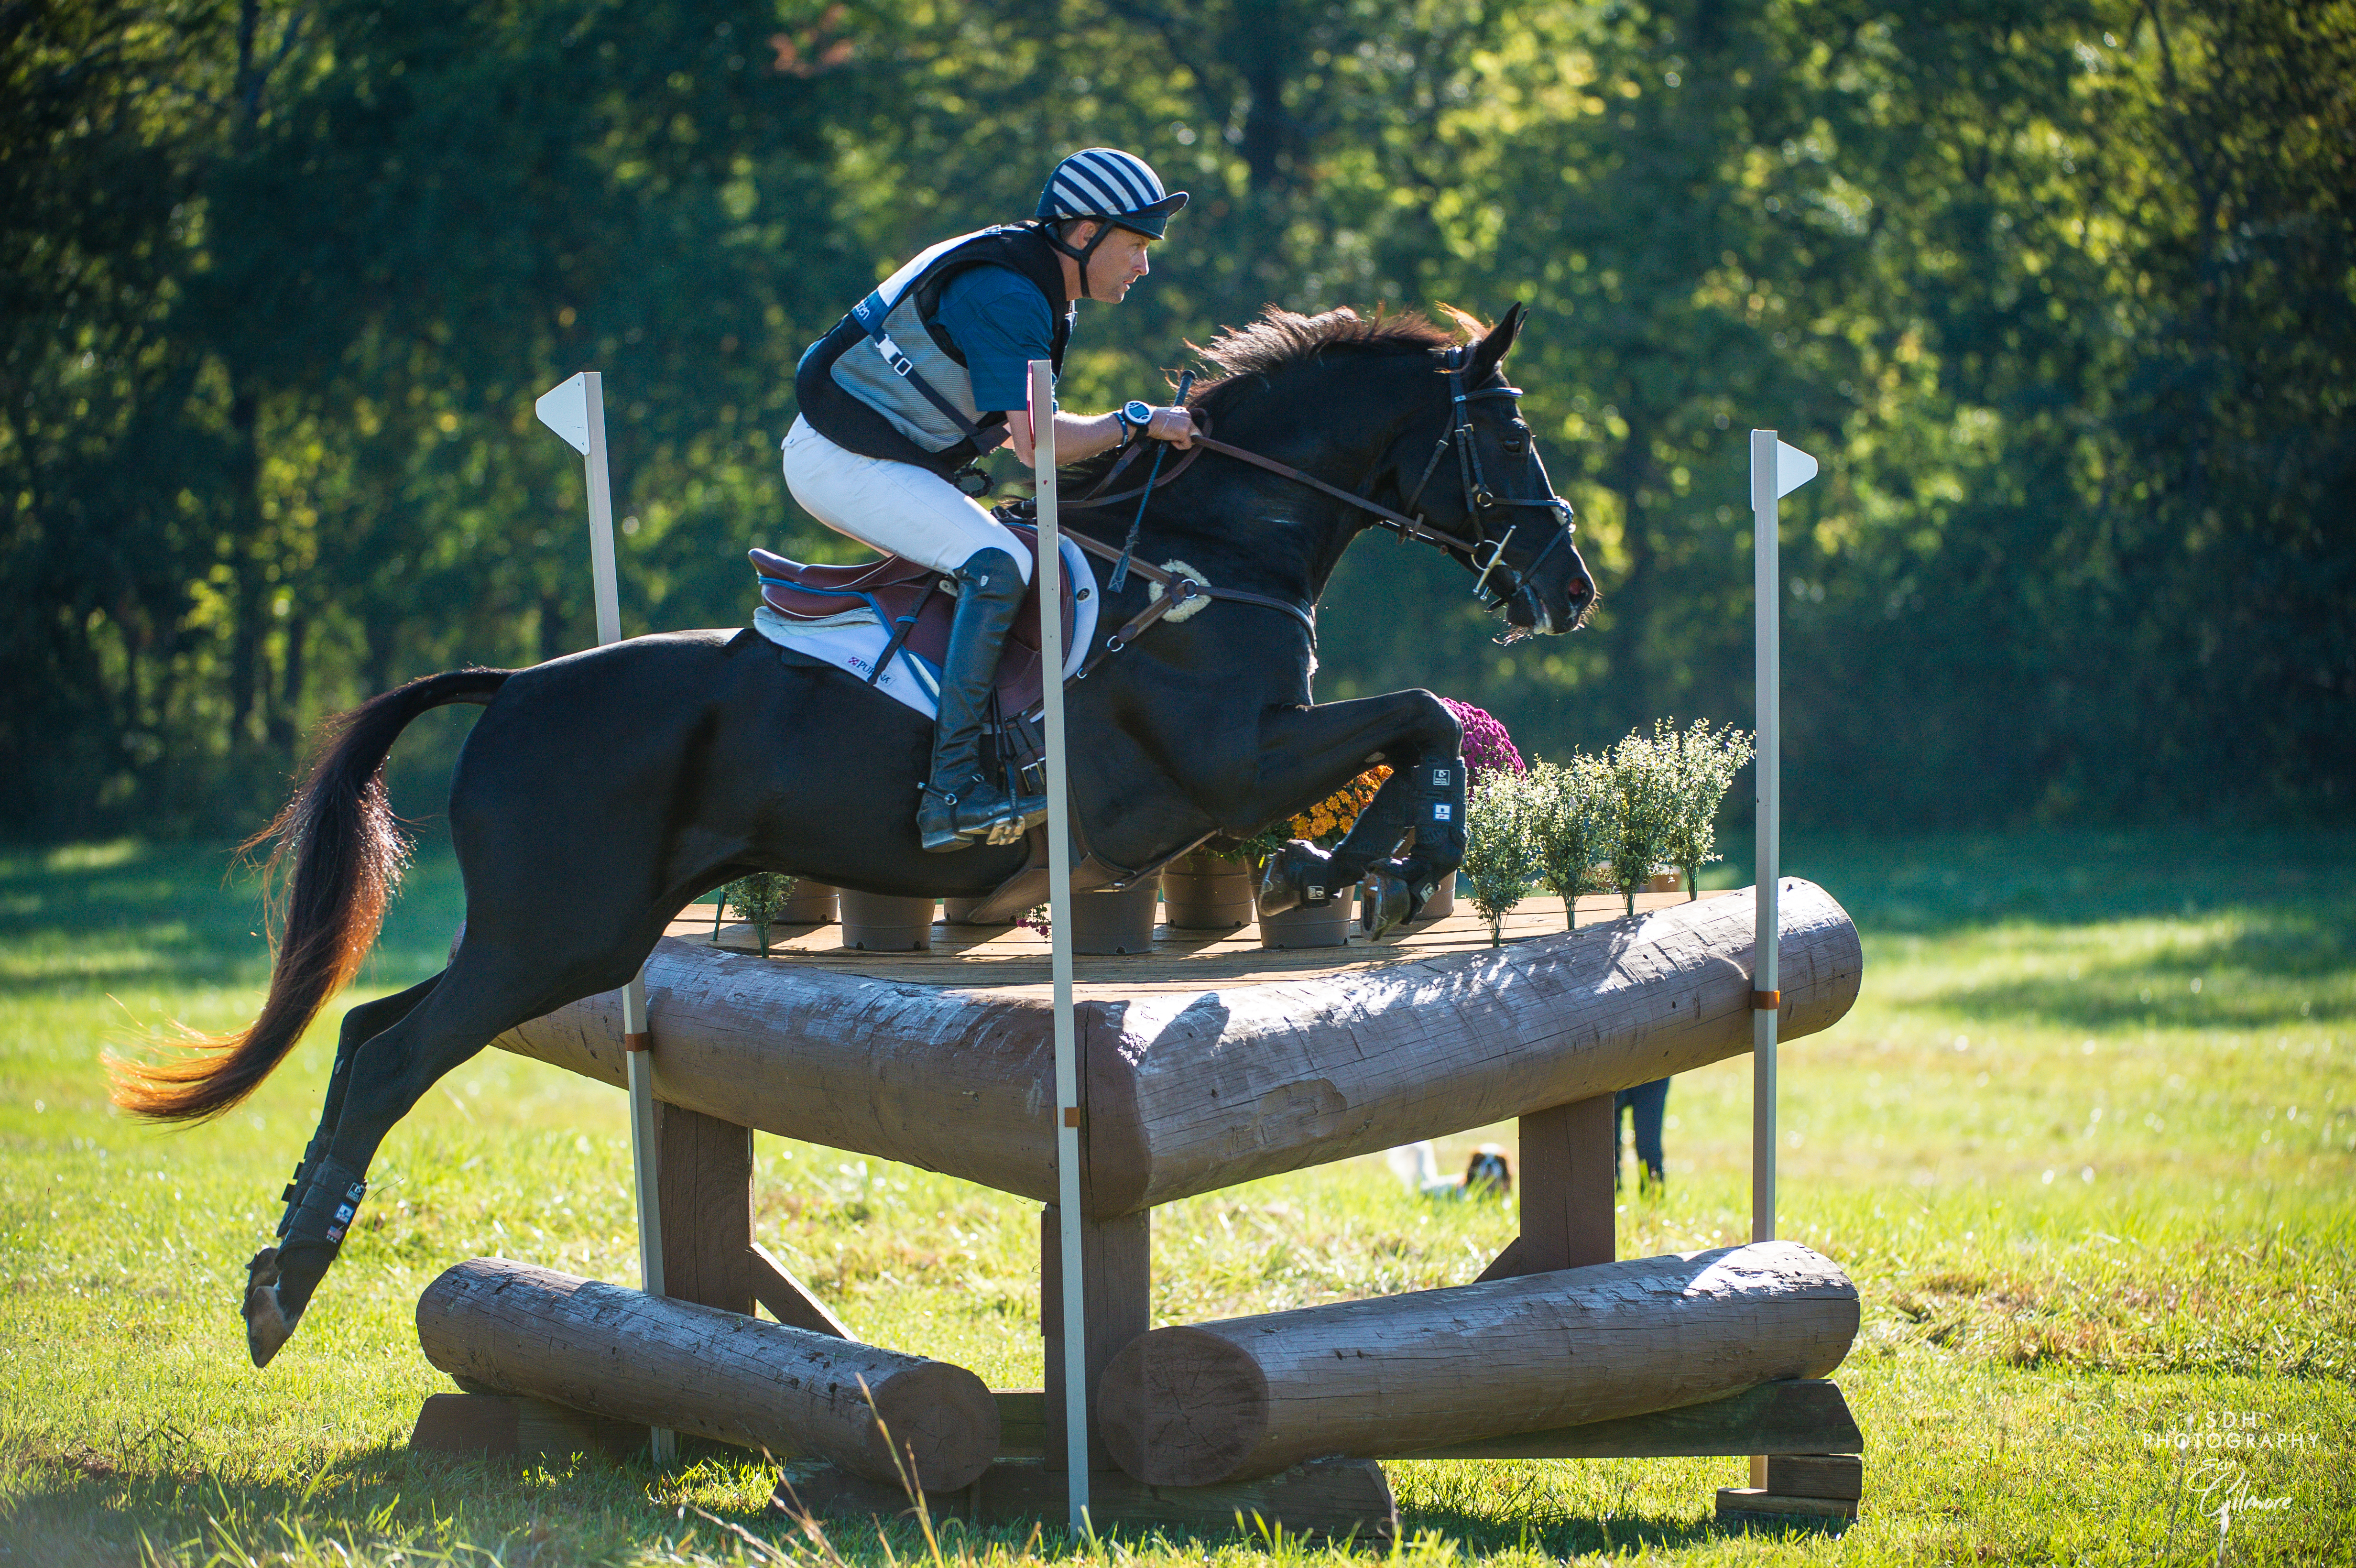 Your $50 donation helps purchase the paint and stain needed to maintain the many cross-country jumps at Morven Park.